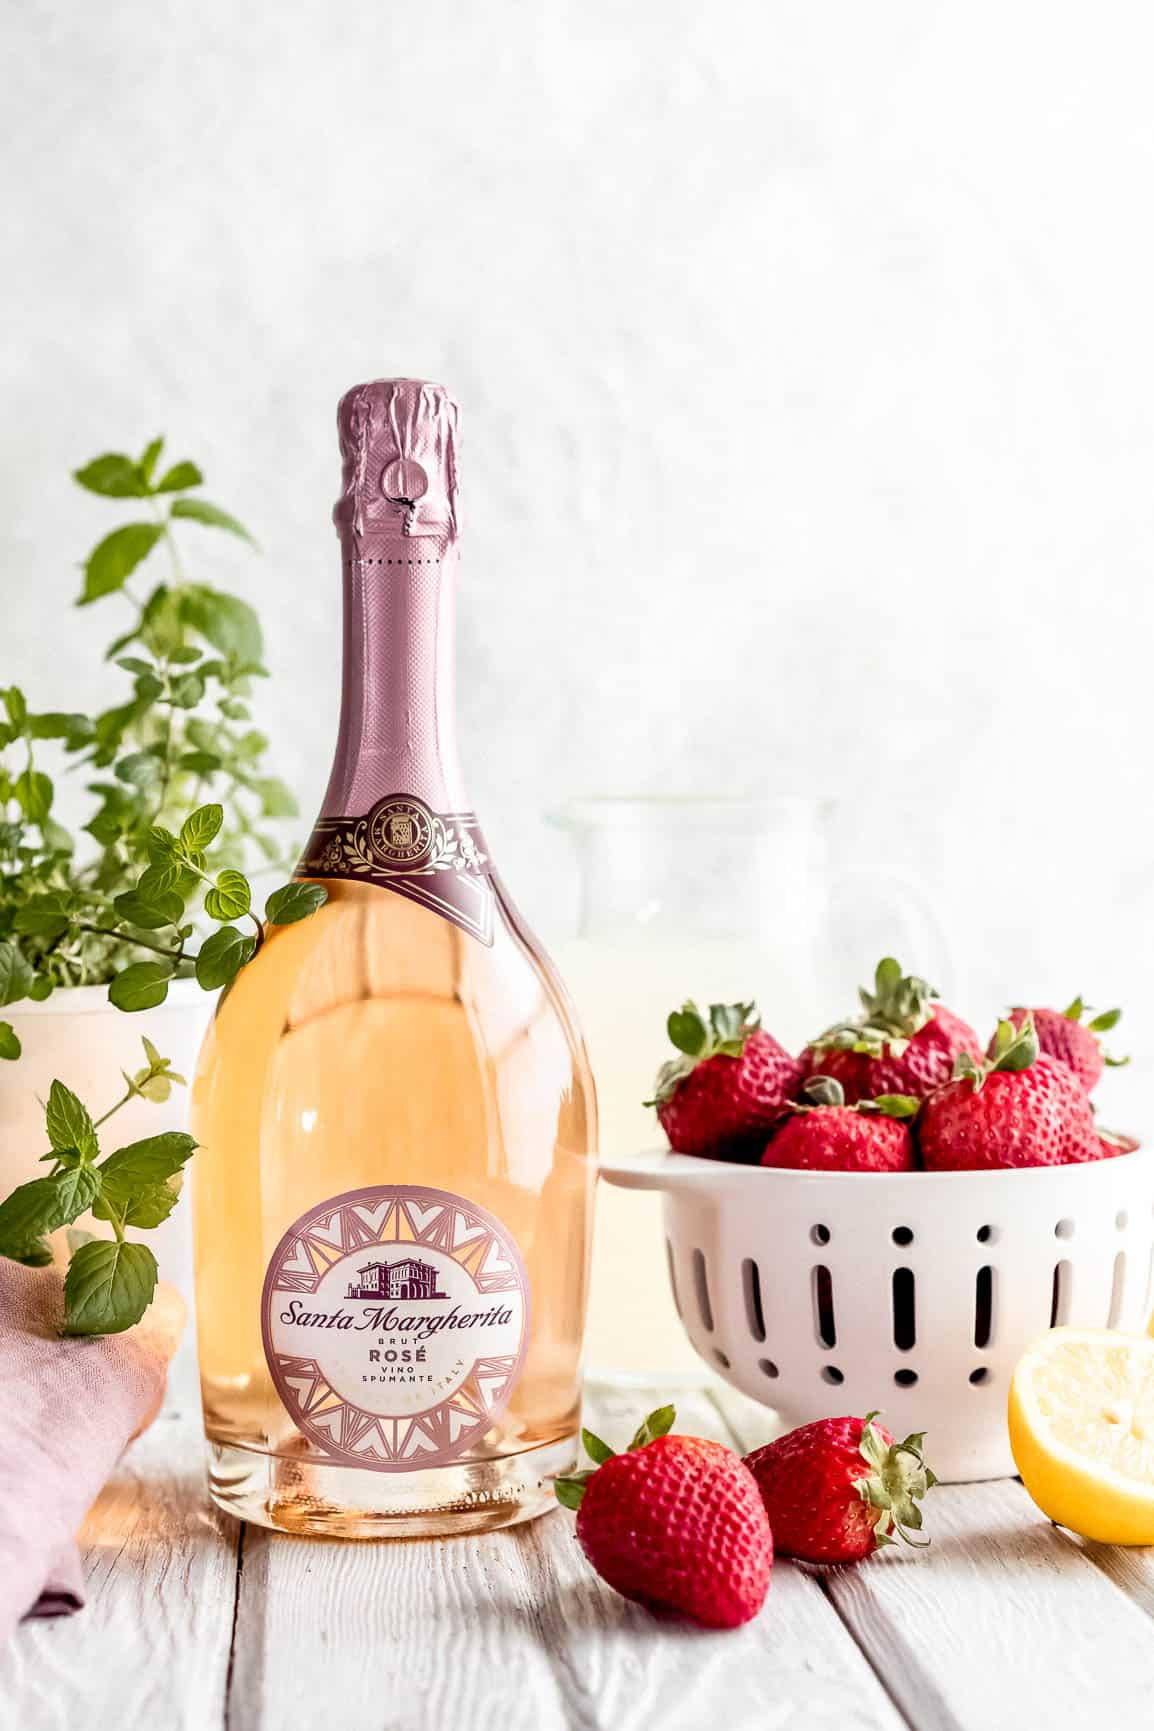 Santa Margherita Sparkling Rose with potted mint and colander of fresh red strawberries.